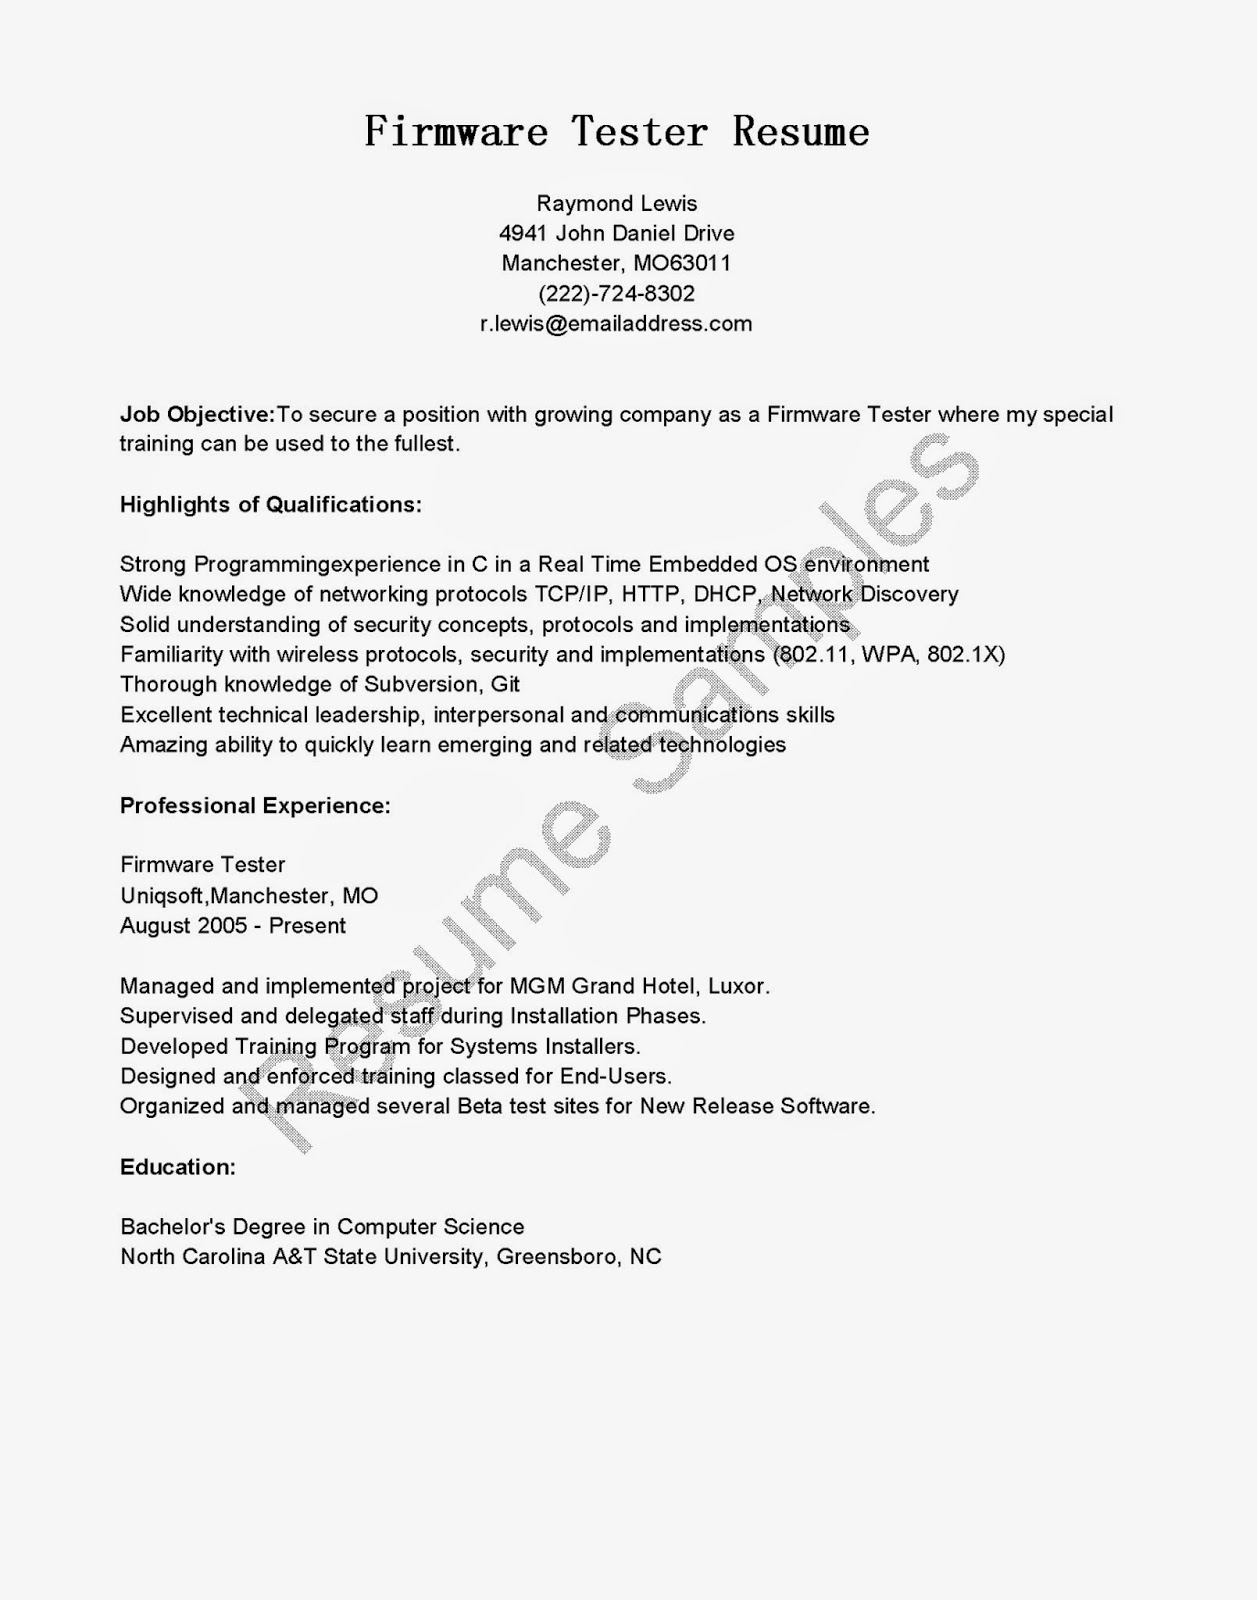 Resume Samples: Firmware Tester Resume Sample